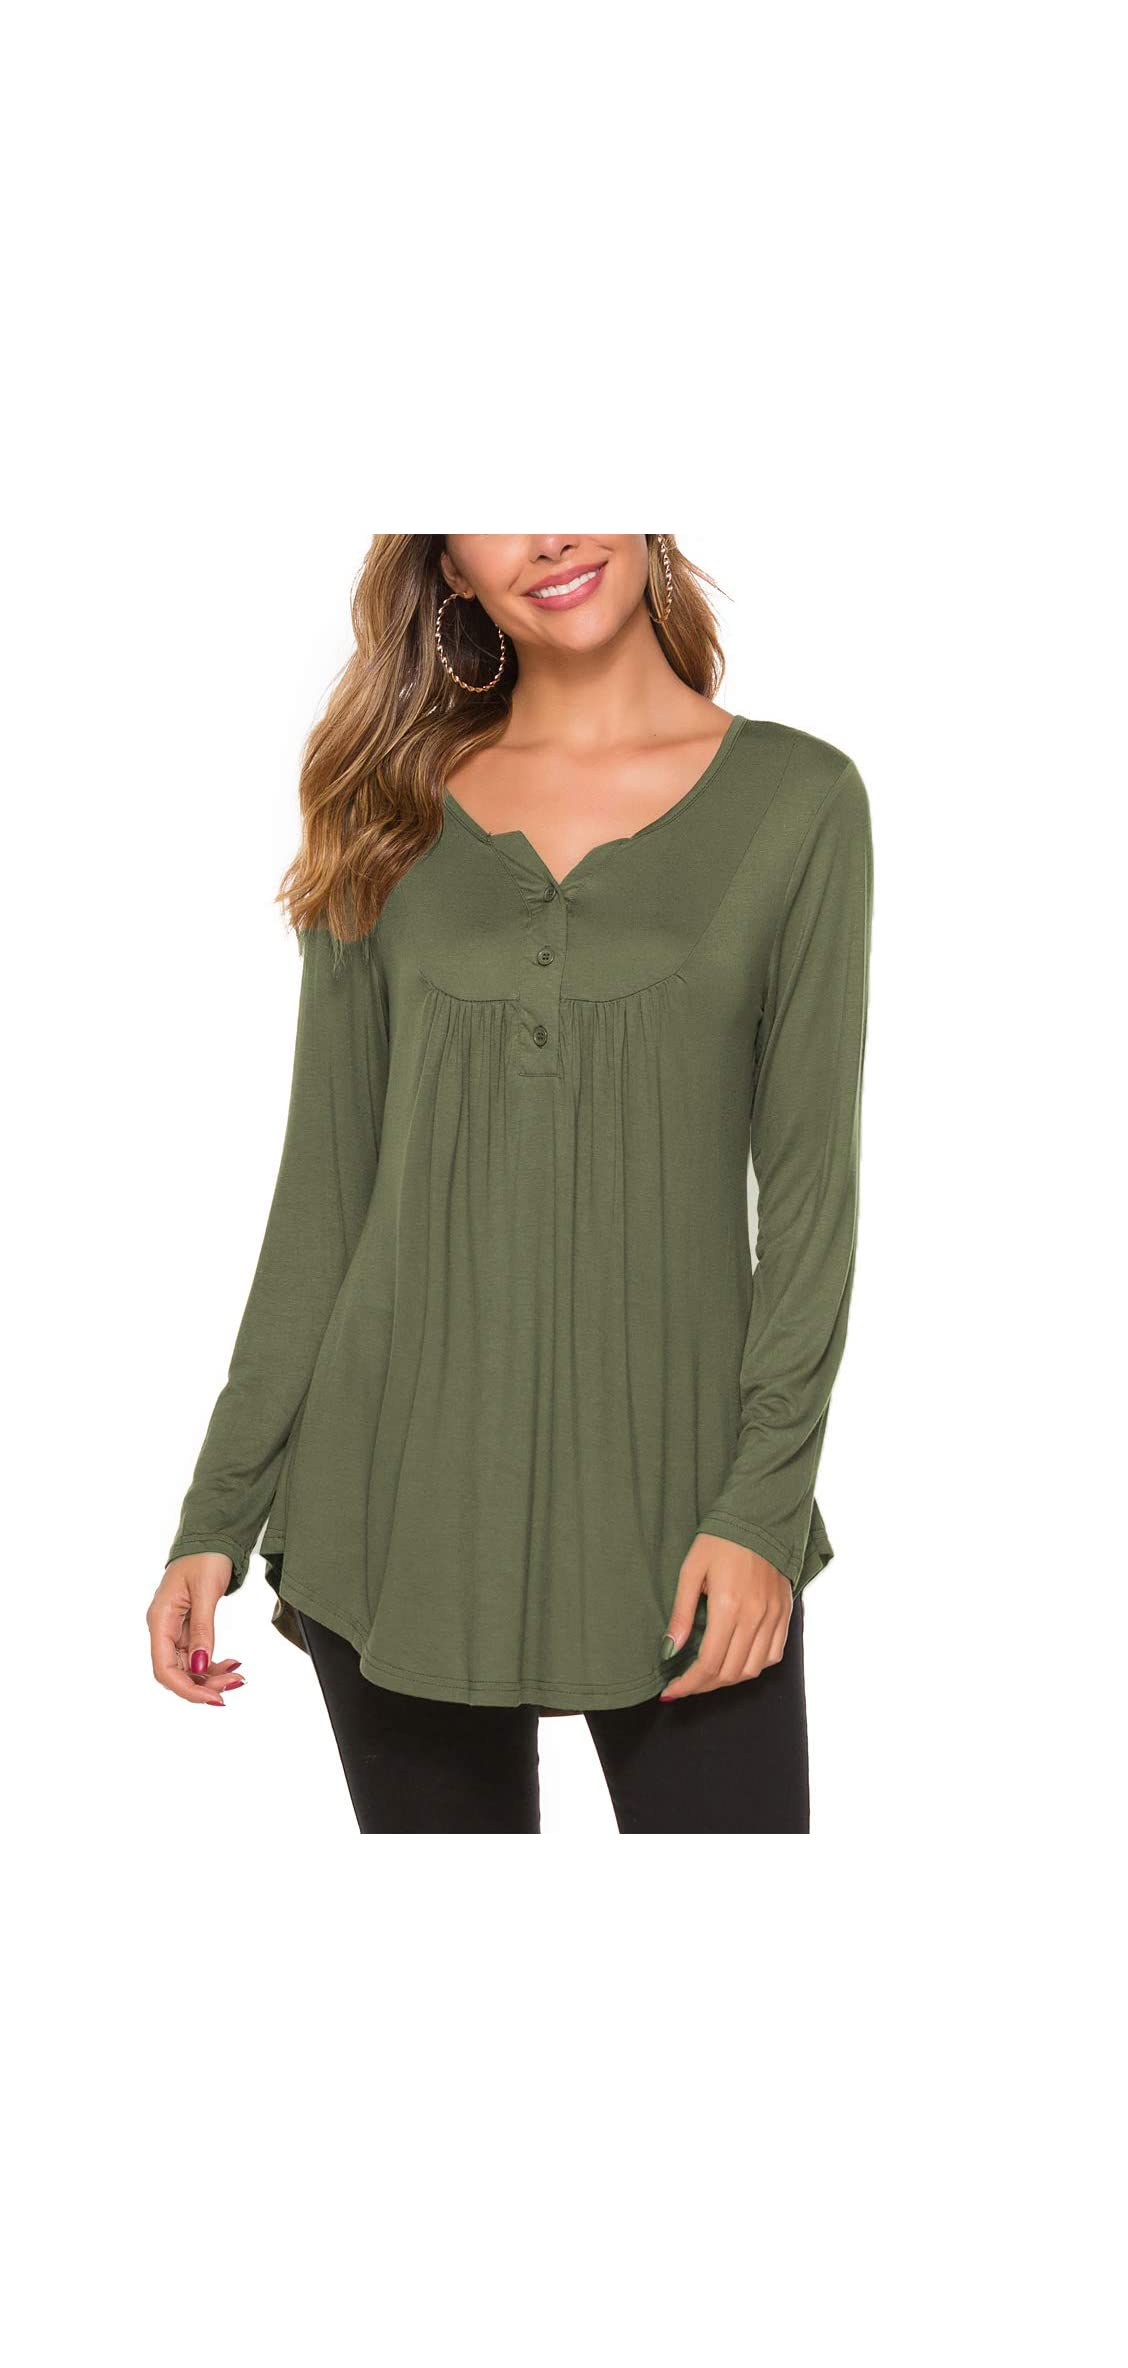 Women's Casual Long Sleeve Henley V-neck Loose Fit Pleated Tunic